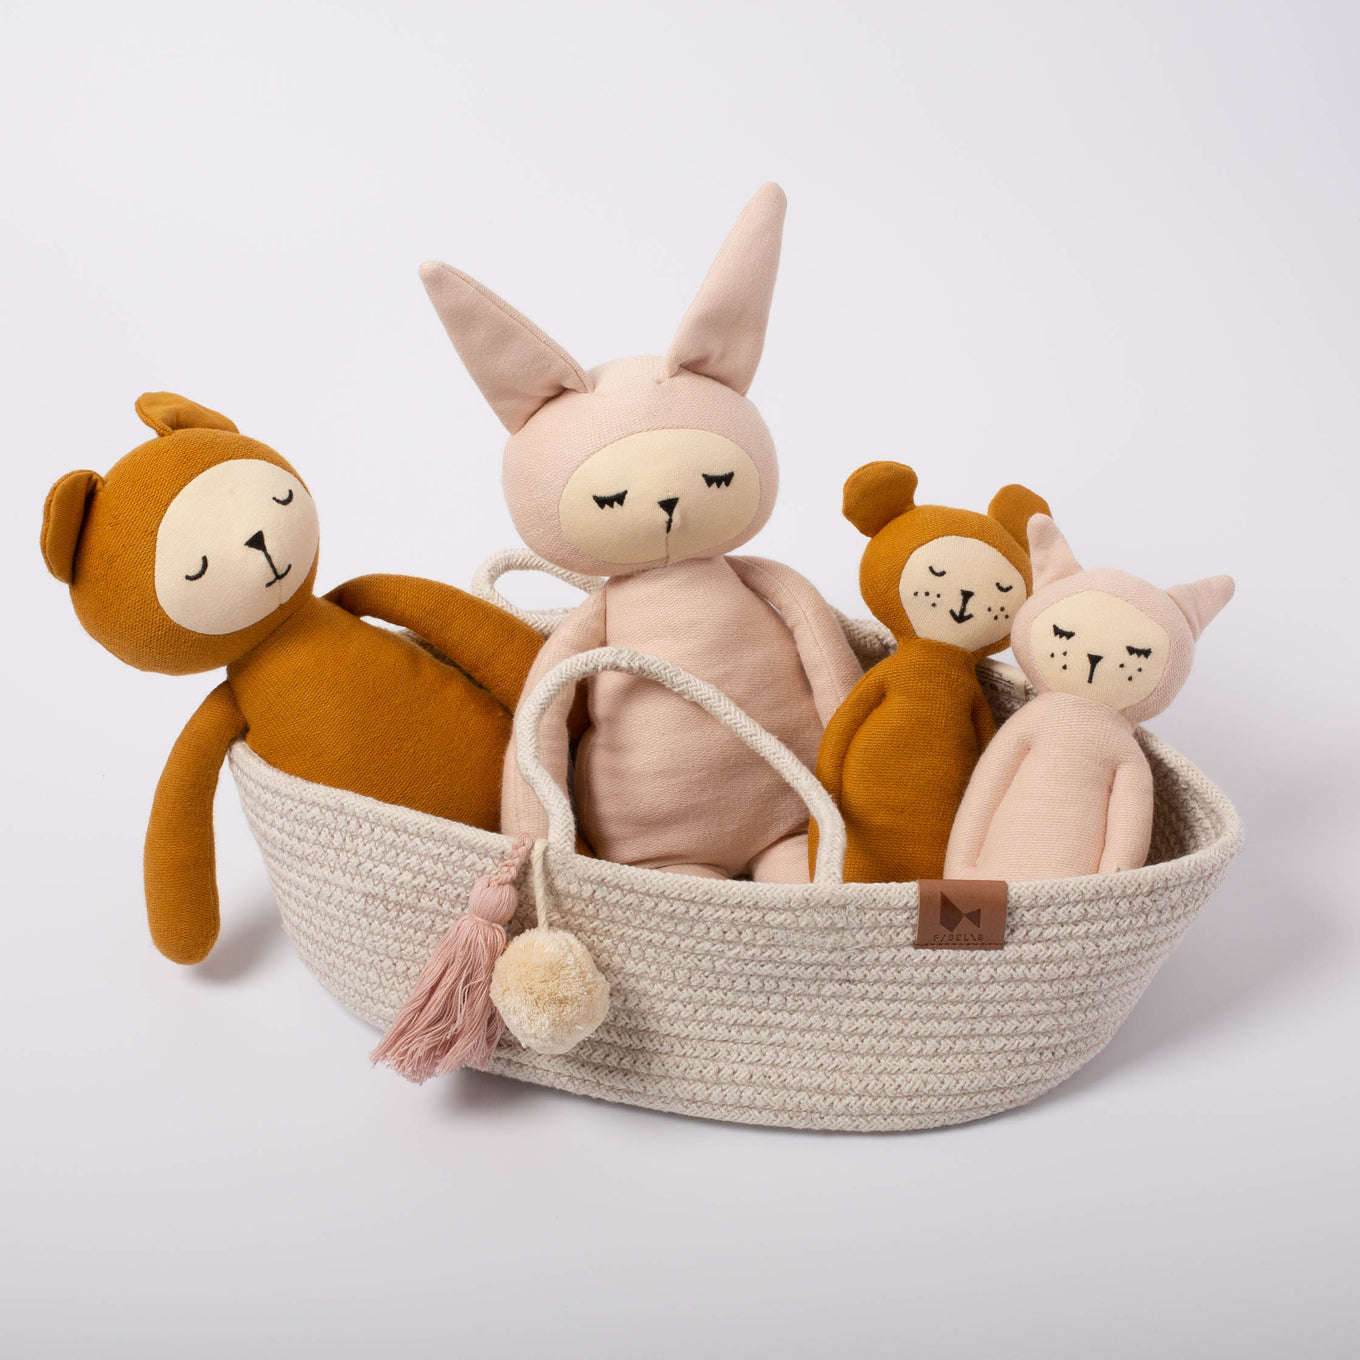 Rope Dolls Basket